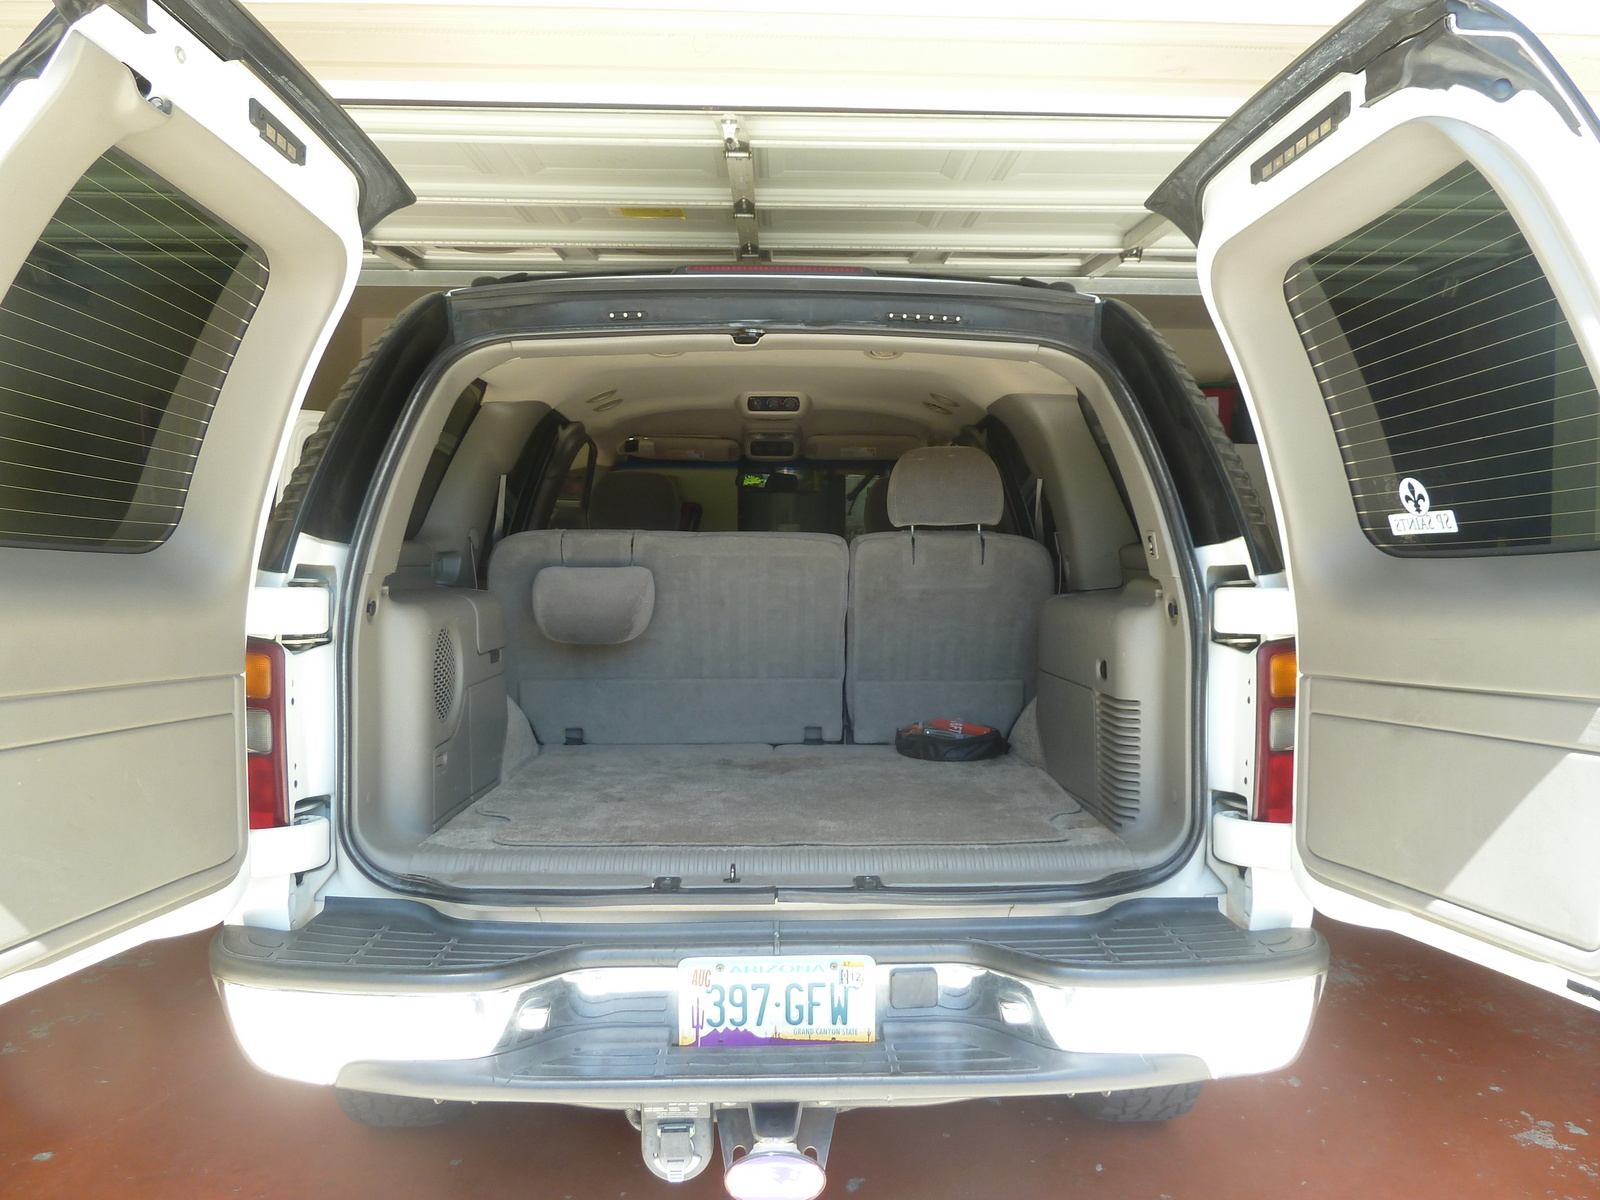 2012 Used Chevrolet Suburban 4wd 4dr 1500 Ltz At Terry